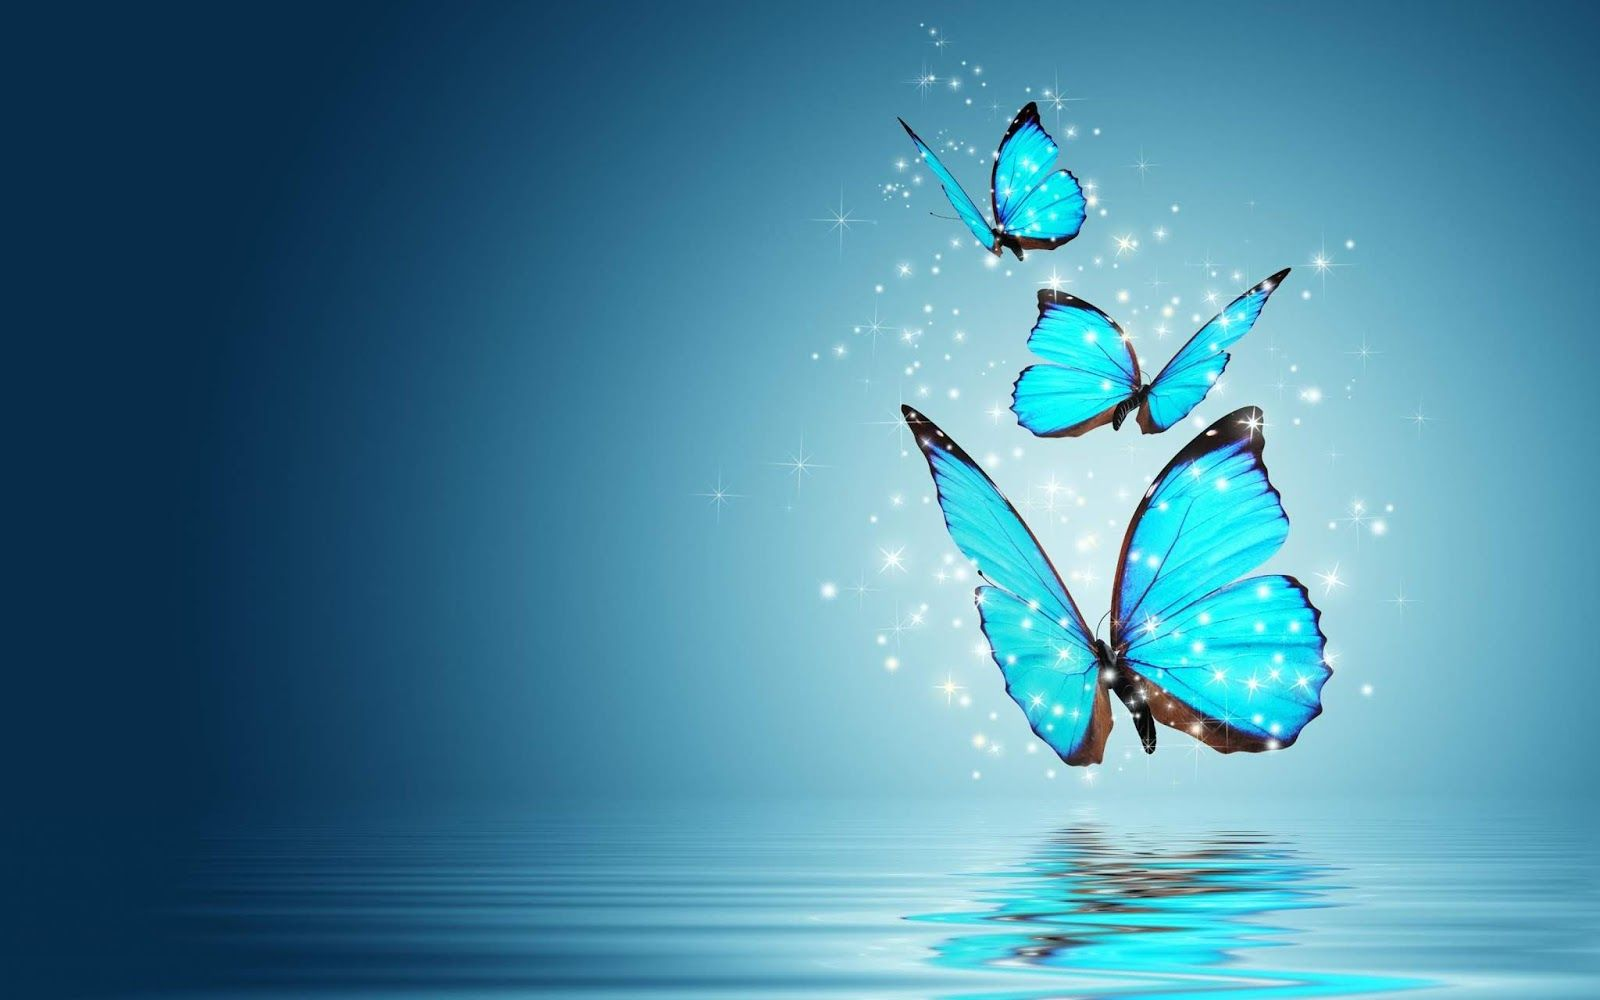 1080p Hd Teal Butterfly Wallpaper High Quality Desktop Iphone And Android Backg Butterfly Wallpaper Butterfly Wallpaper Backgrounds Blue Butterfly Wallpaper